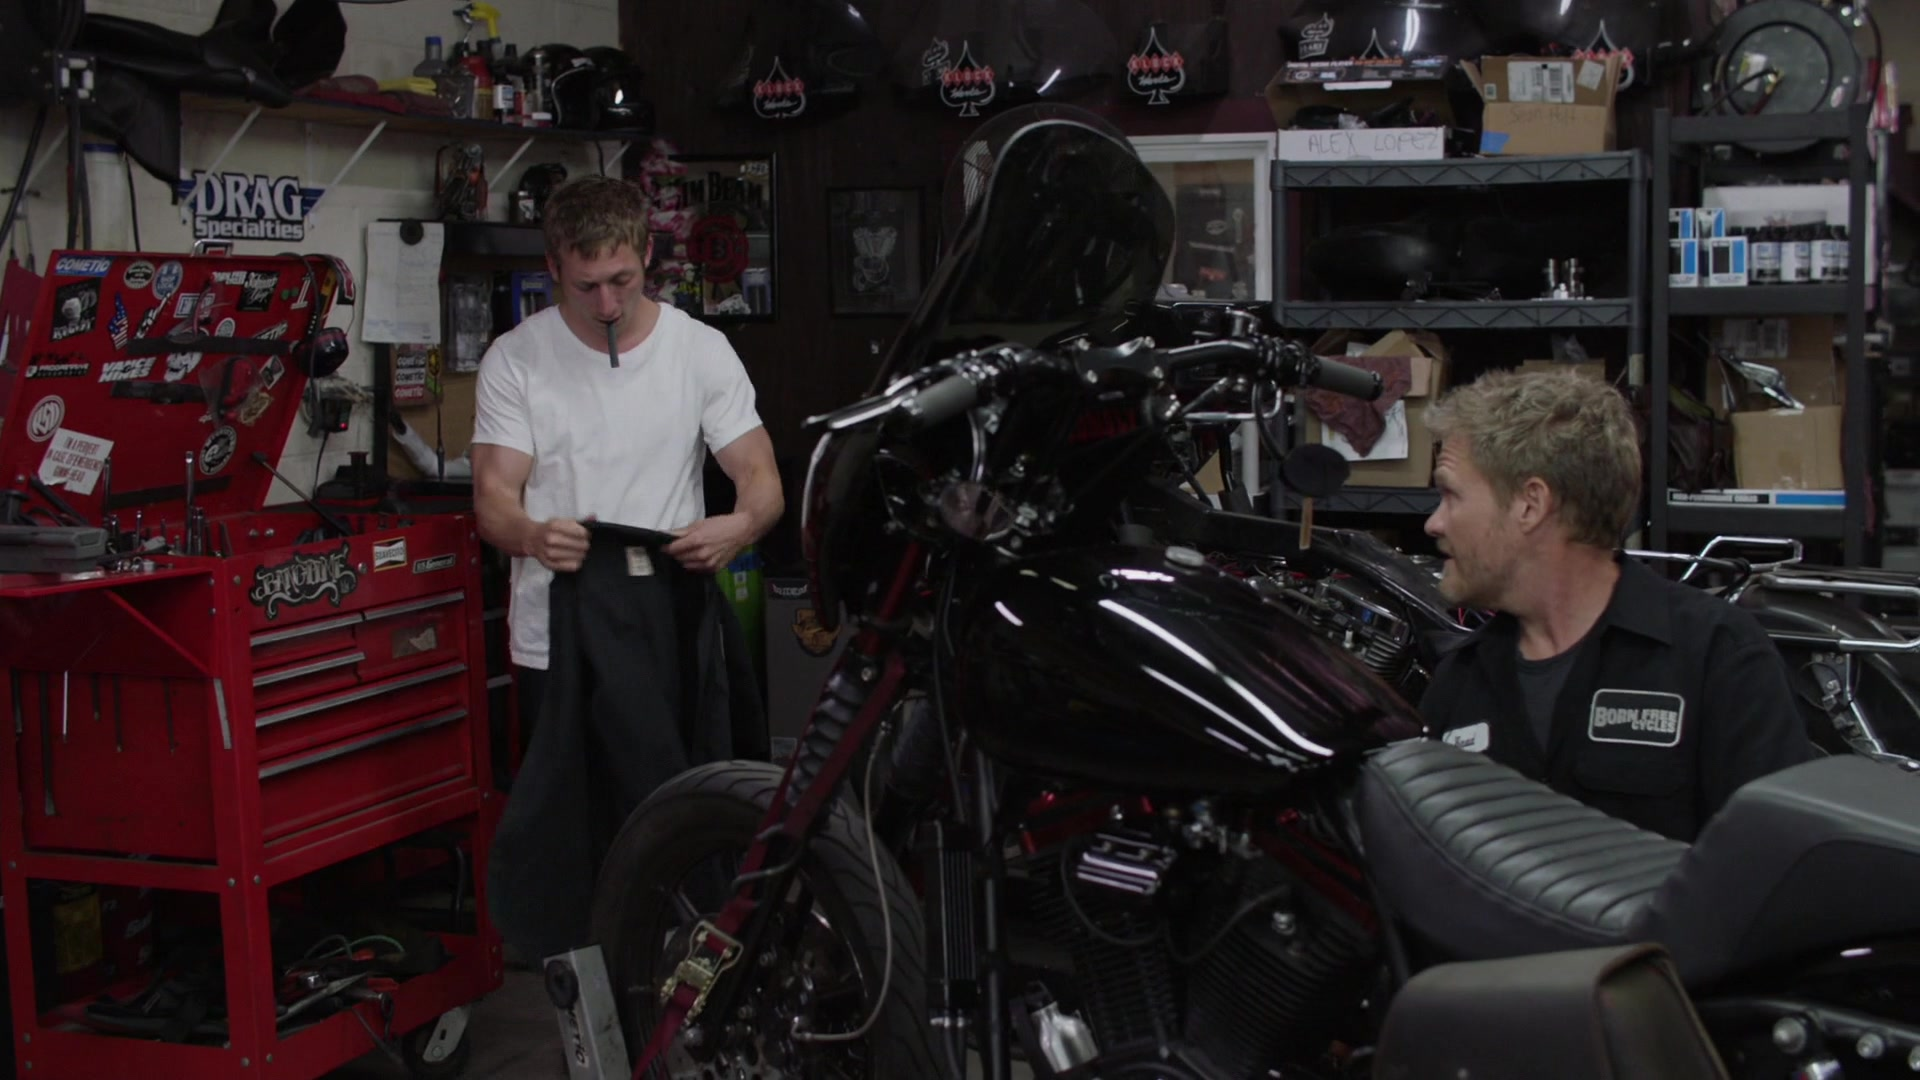 Born Free Cycles Motorcycle Shop In Shameless Season 10 Episode 5 Sparky 2019